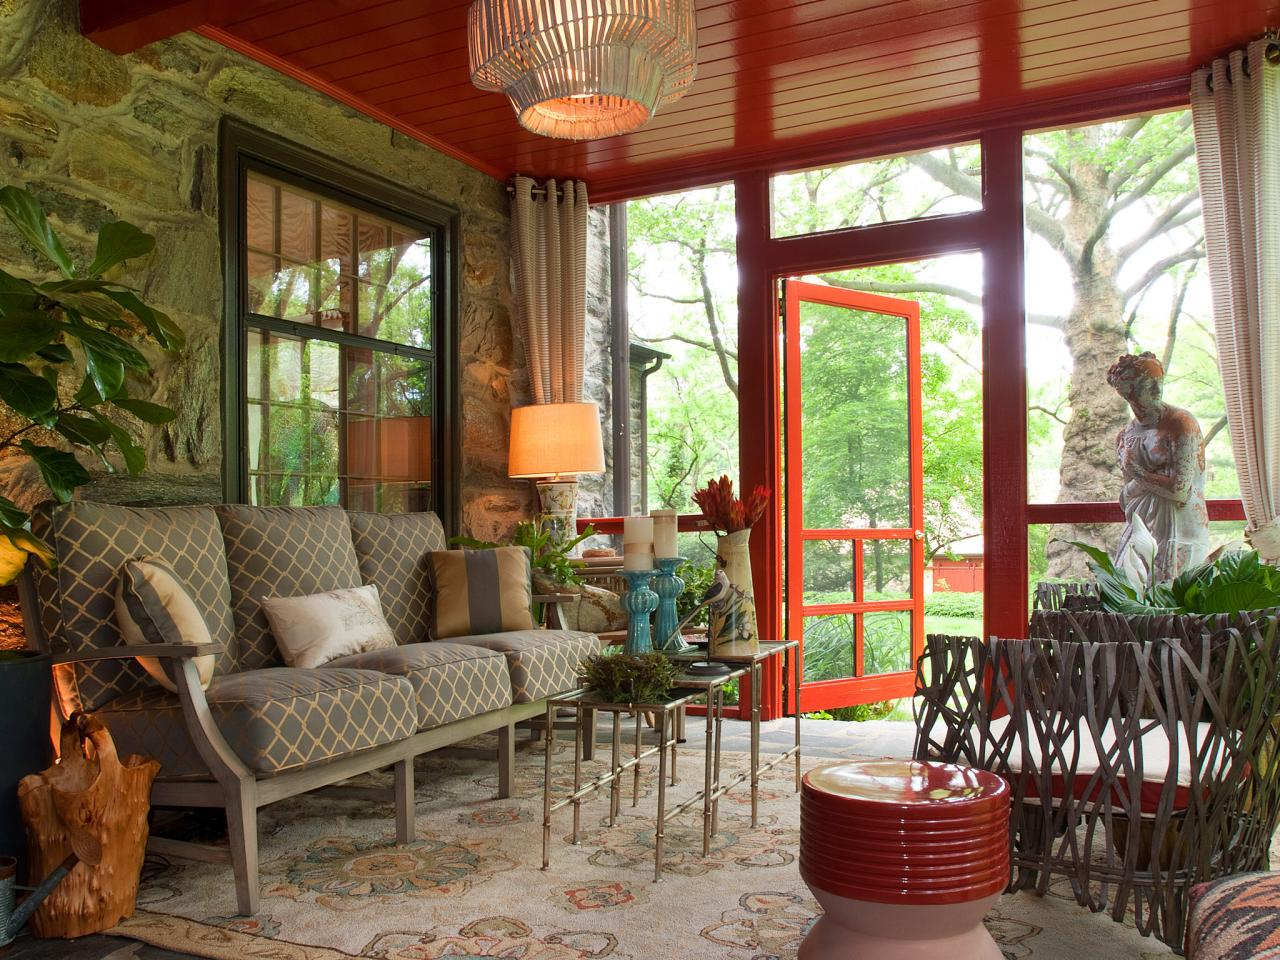 From wicker nightmare to colorful outdoor space deborah for Deco veranda